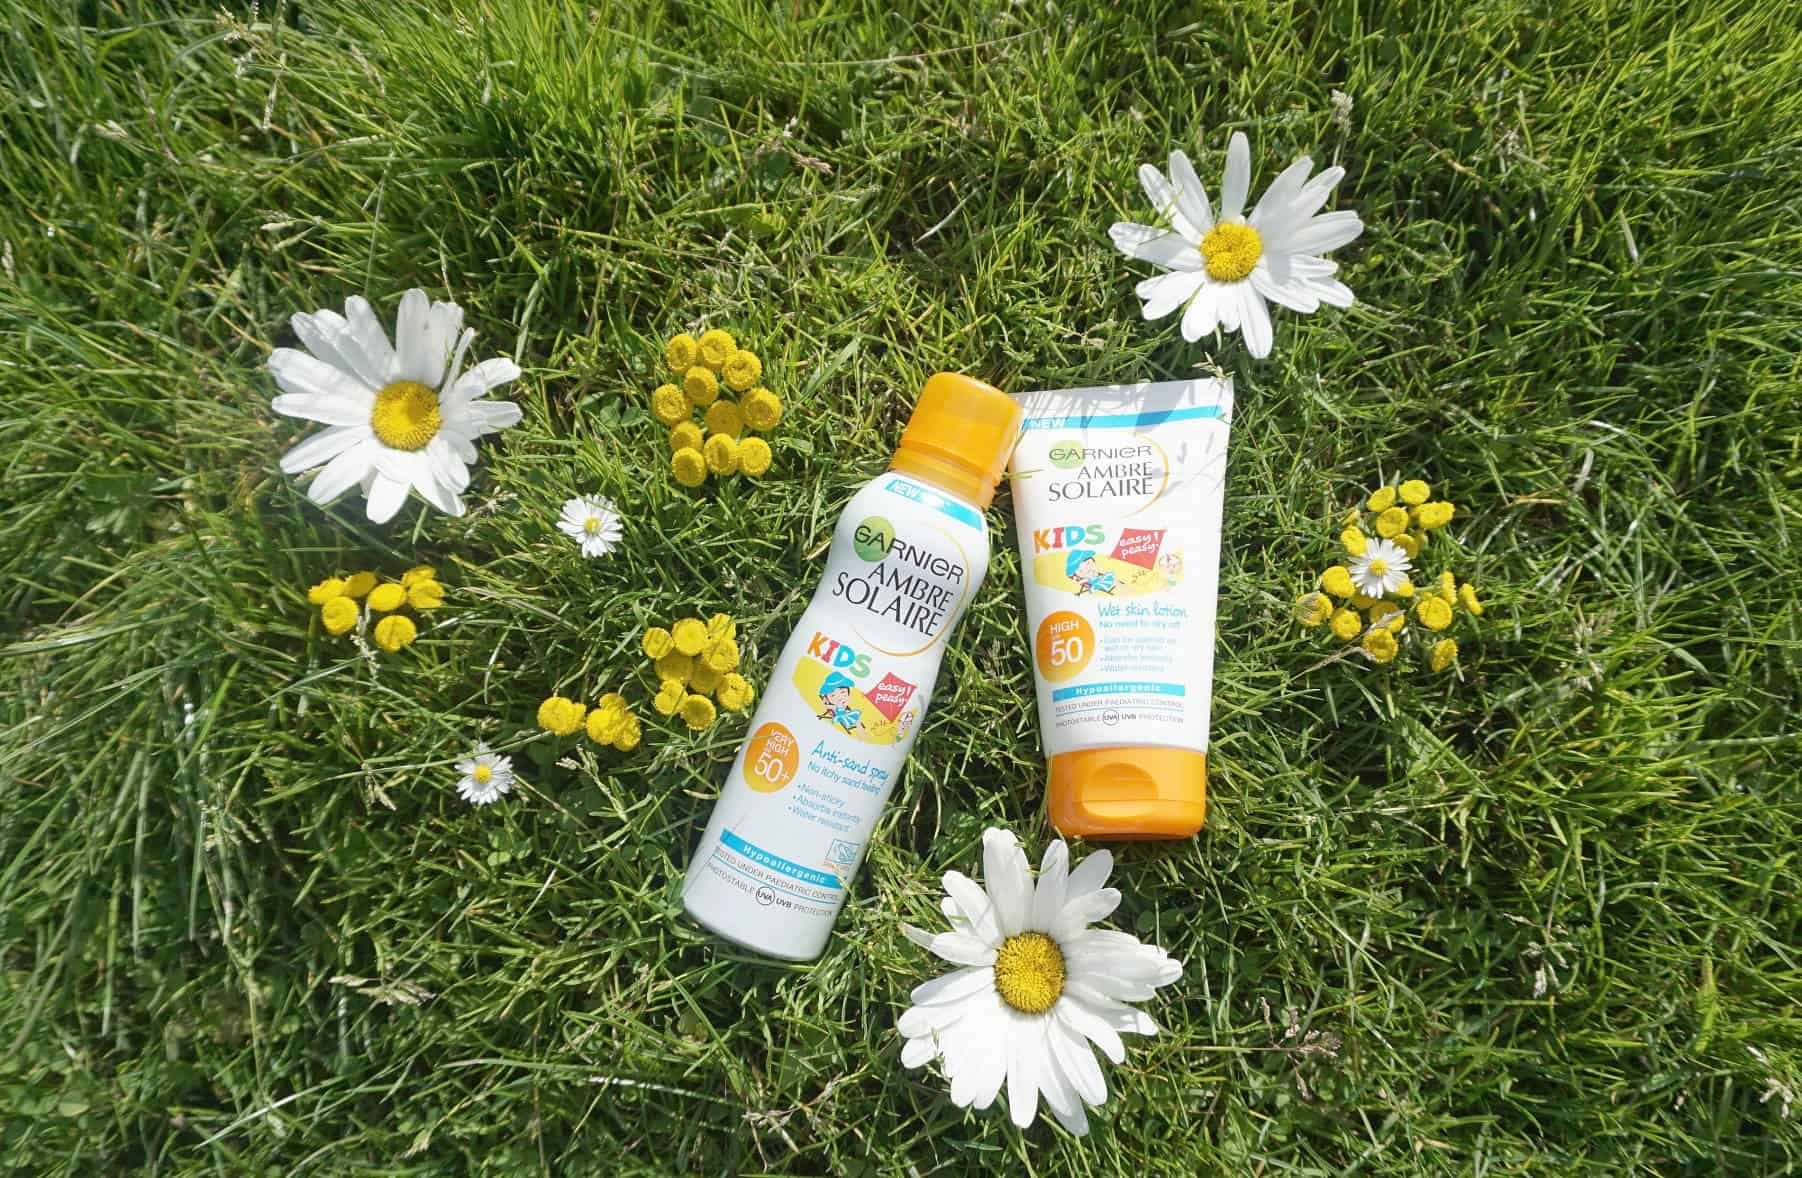 Sun Protection With Ambre Solaire